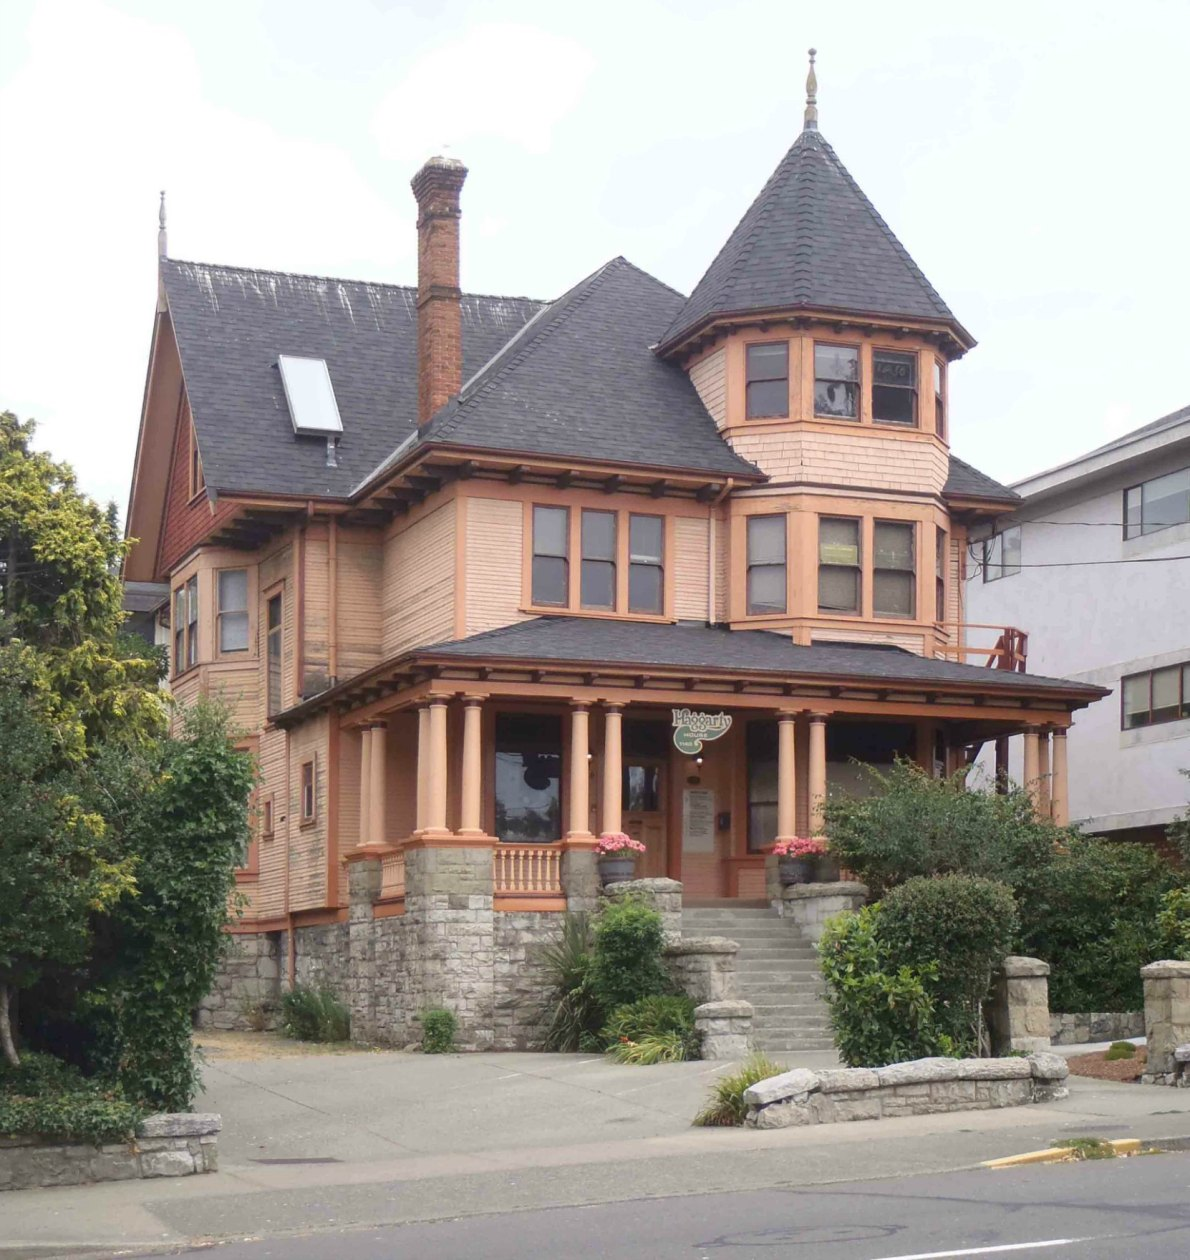 1140 Fort Street. Built in 1907 by Charles Haggerty, a building contractor, as his family residence (photo by Victoria Online Sightseeing)